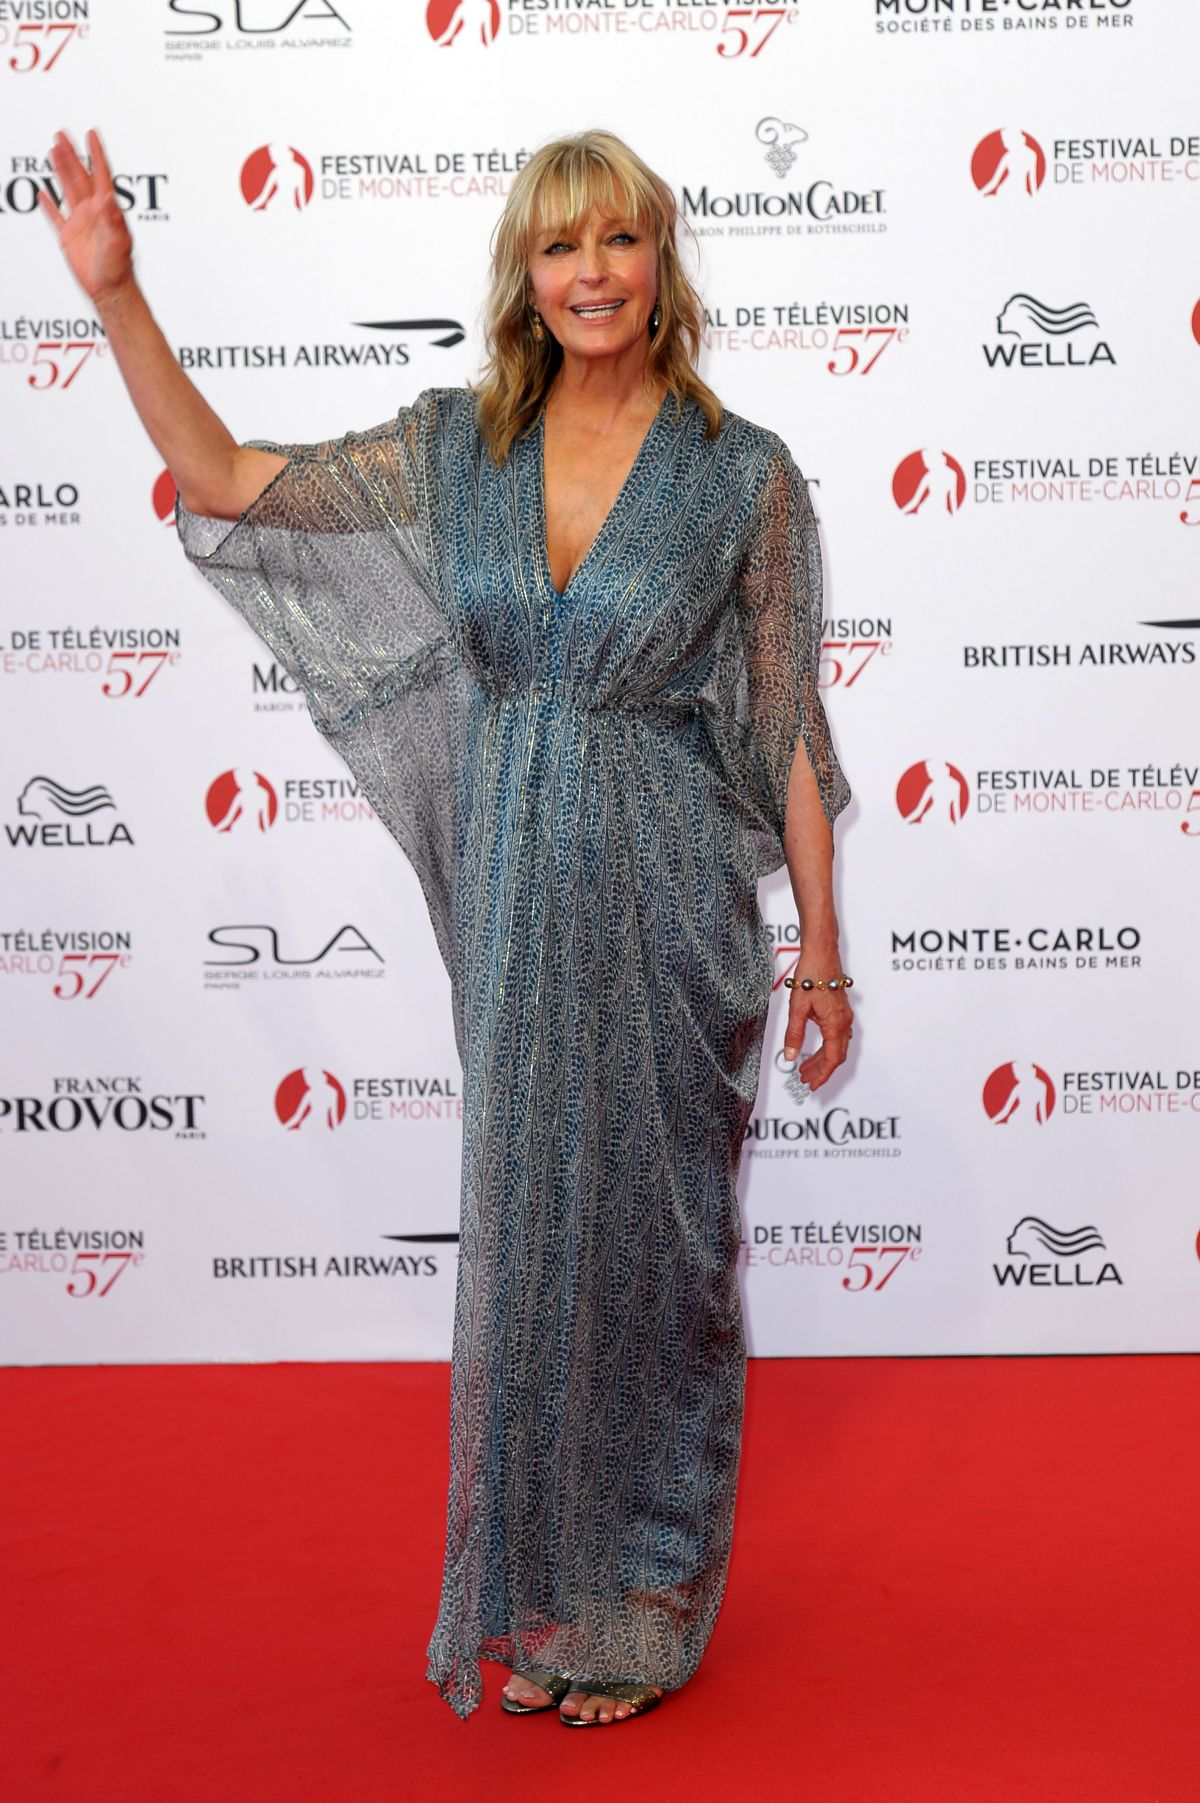 BO DEREK at 57th Monte-Carlo Television Festival Opening 06/16/2017